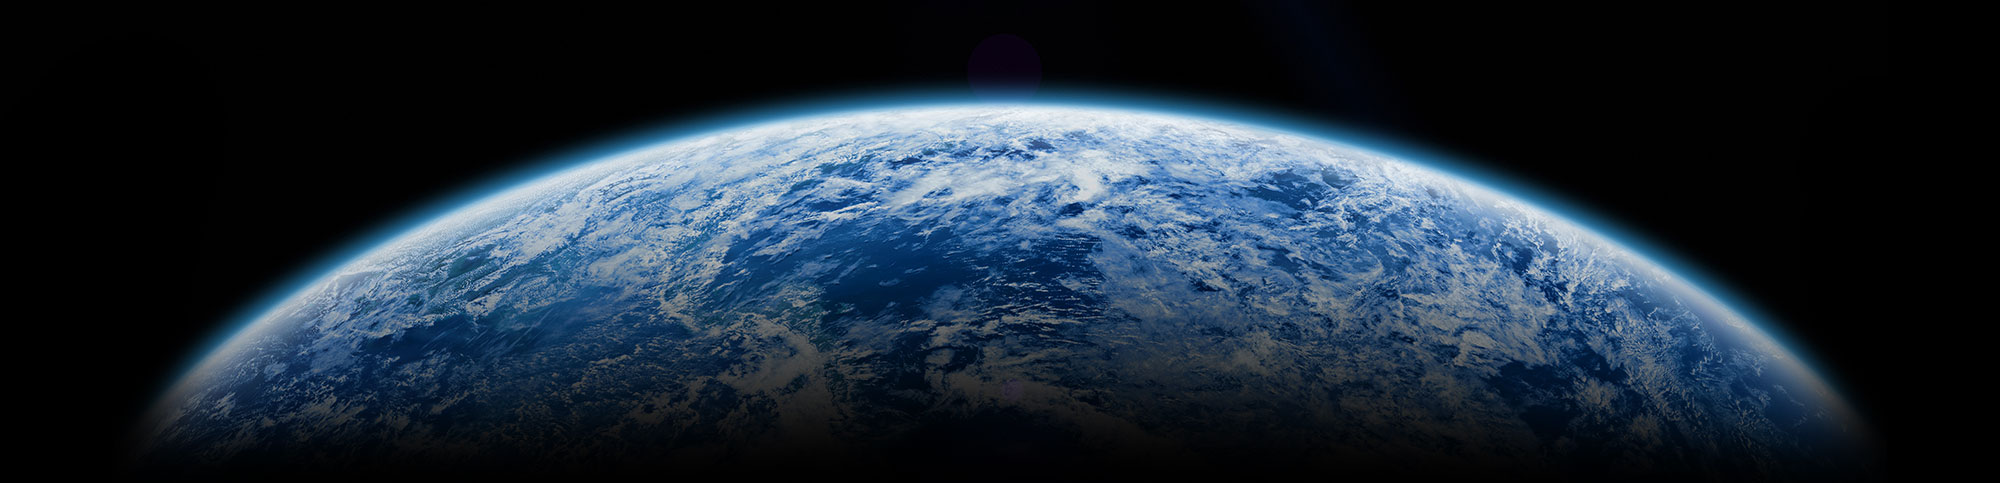 dprint - world view from space